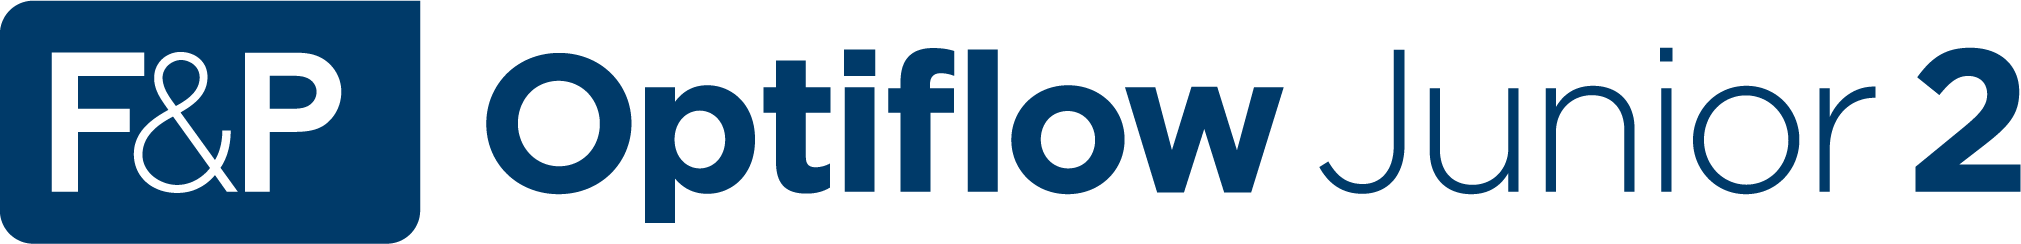 F&P Optiflow Junior 2 logo